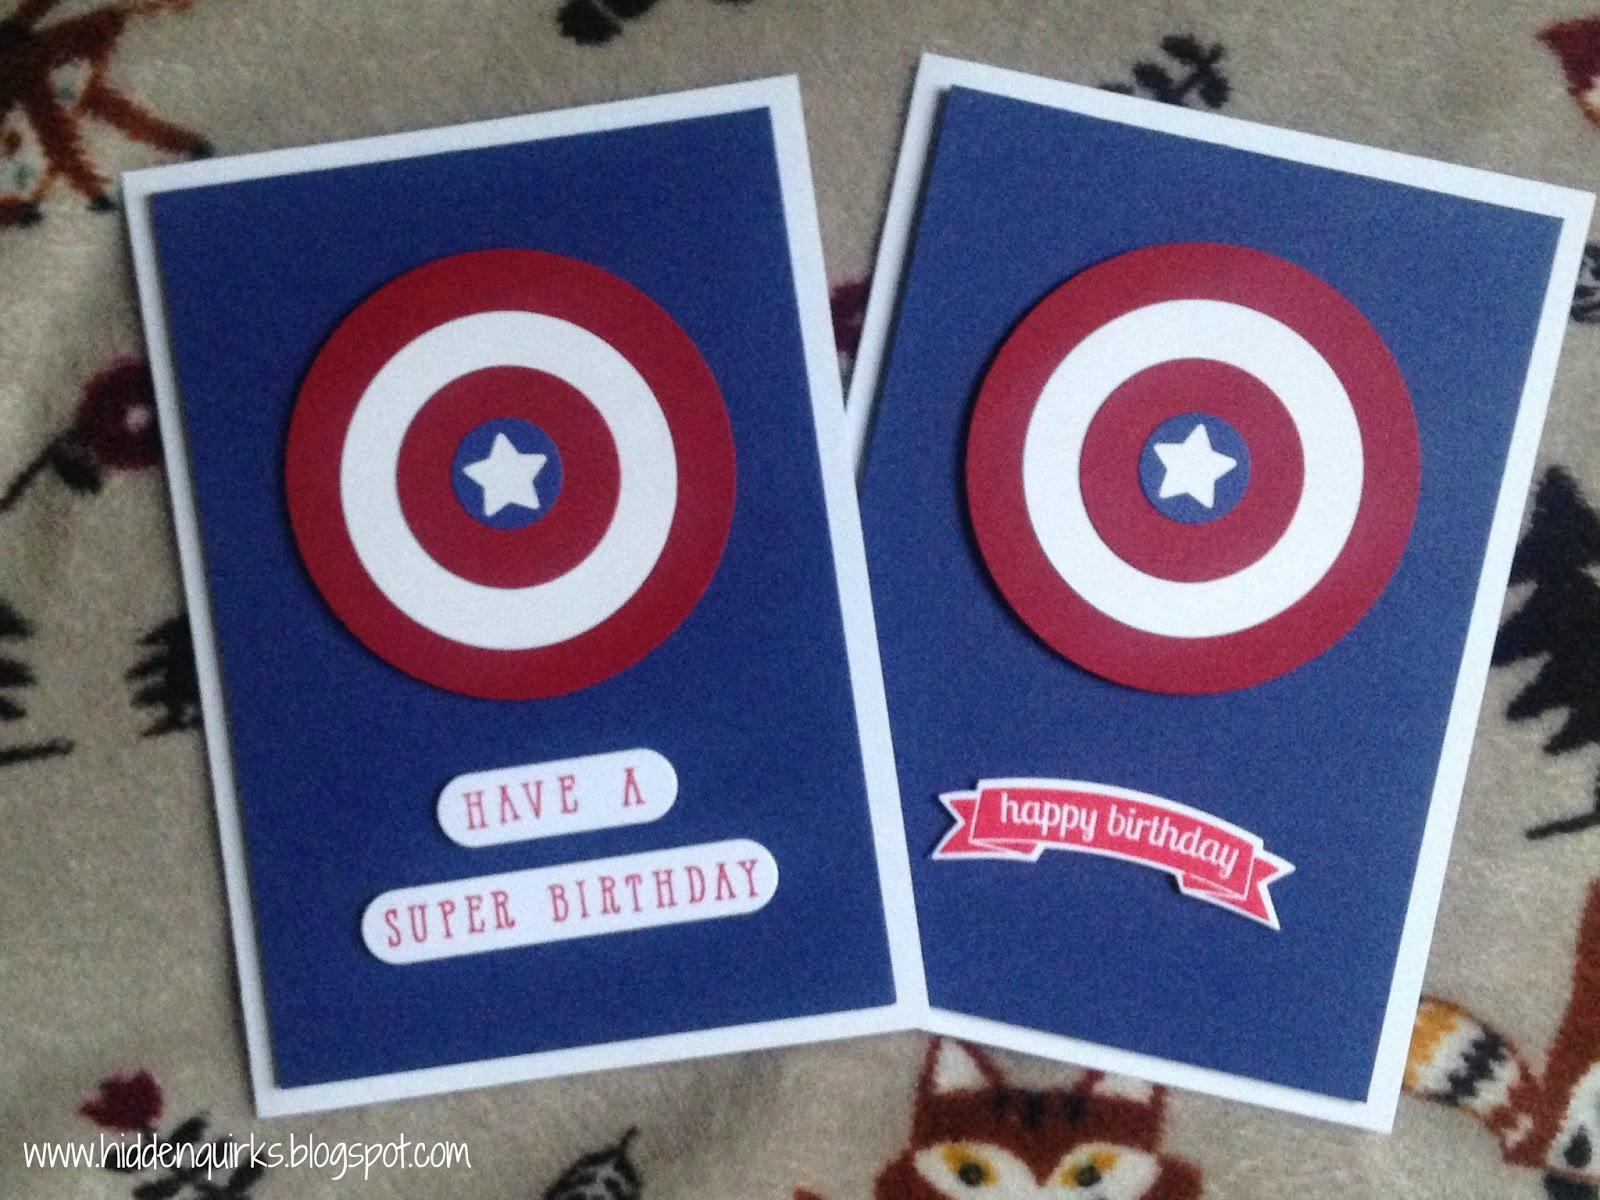 Hidden Quirks Captain America Have a Super Birthday